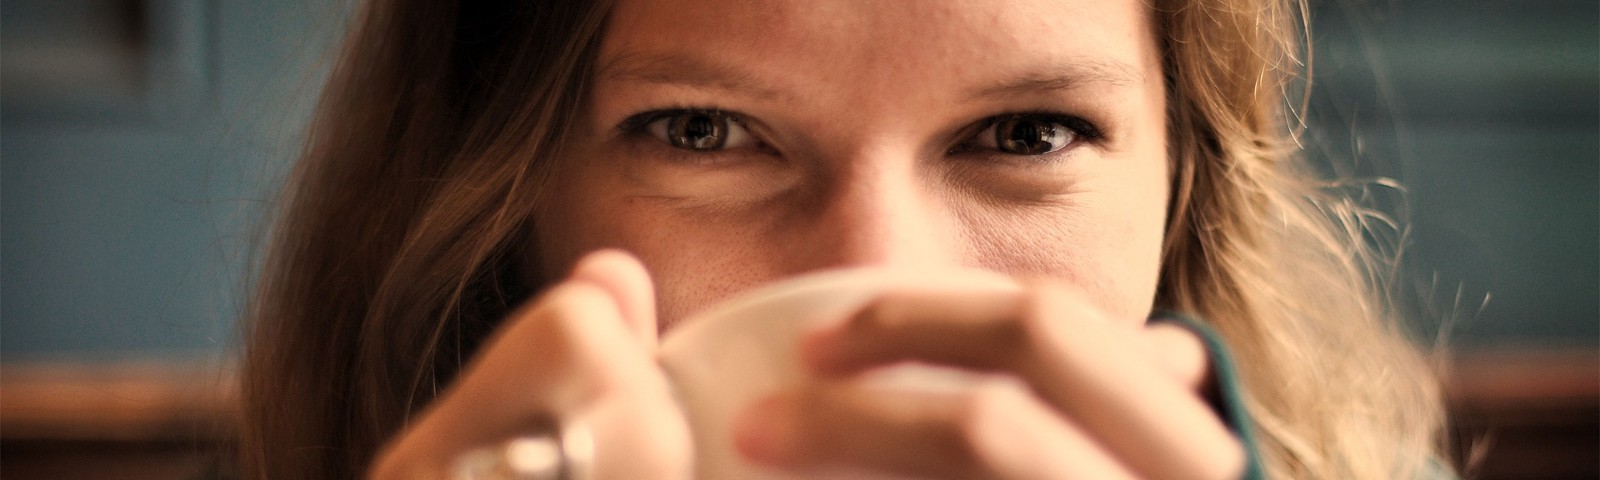 girl wearing a comfortable sweater and drinking a cup of coffee